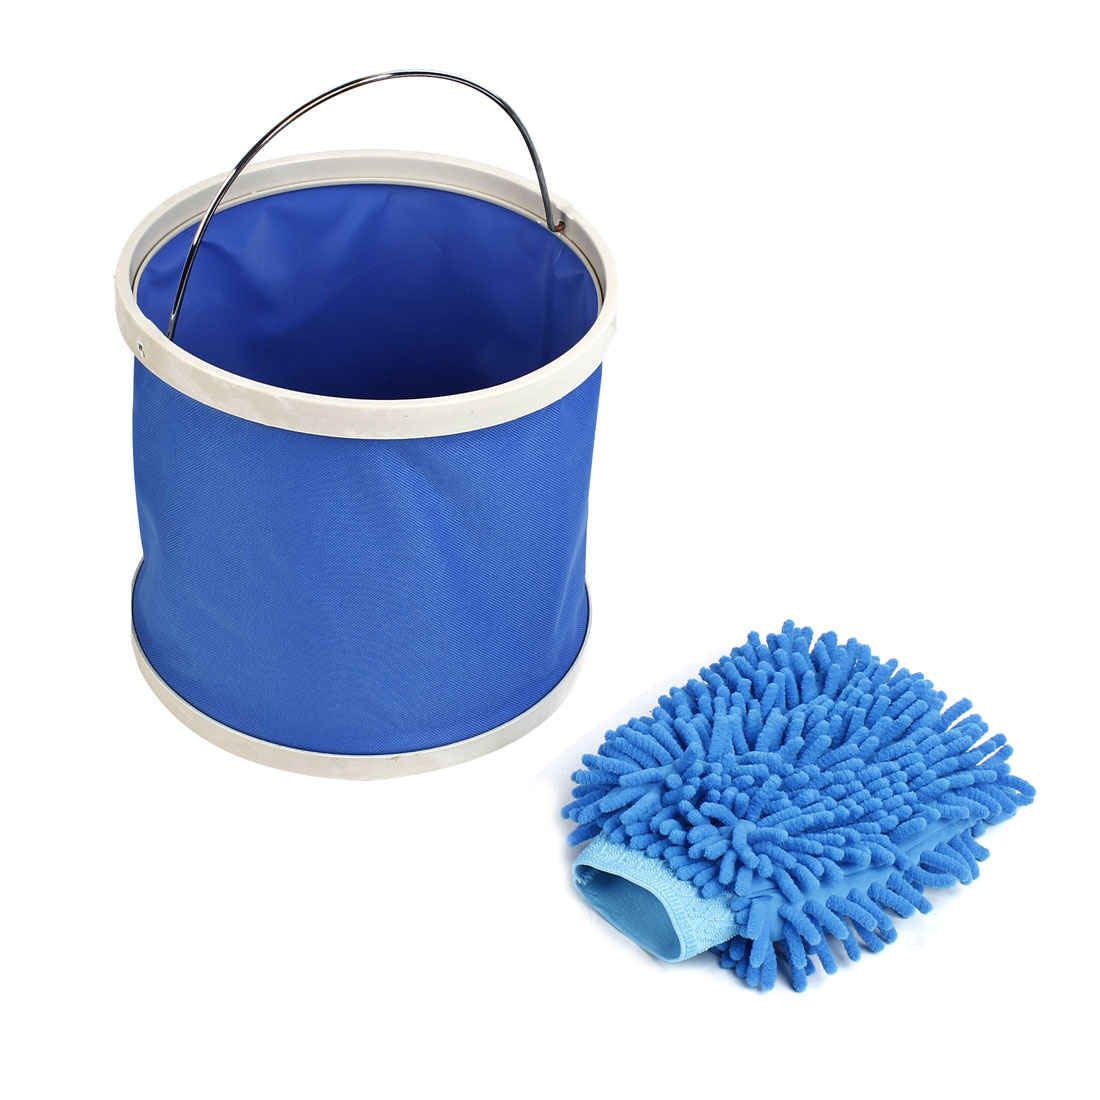 Car Foldable Bucket Container Trash Bin Blue 9-11L w Vehicle Mitt Brush